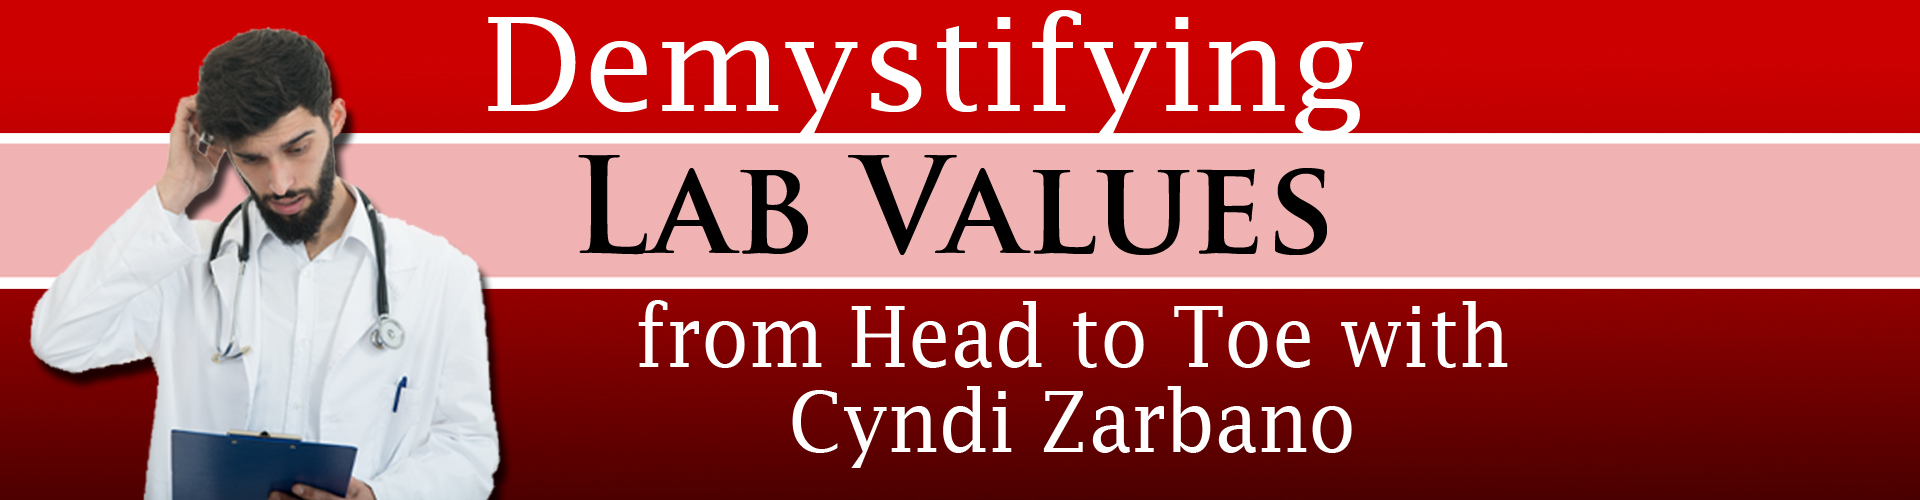 Demystifying Lab Values from Head to Toe with Cyndi Zarbano